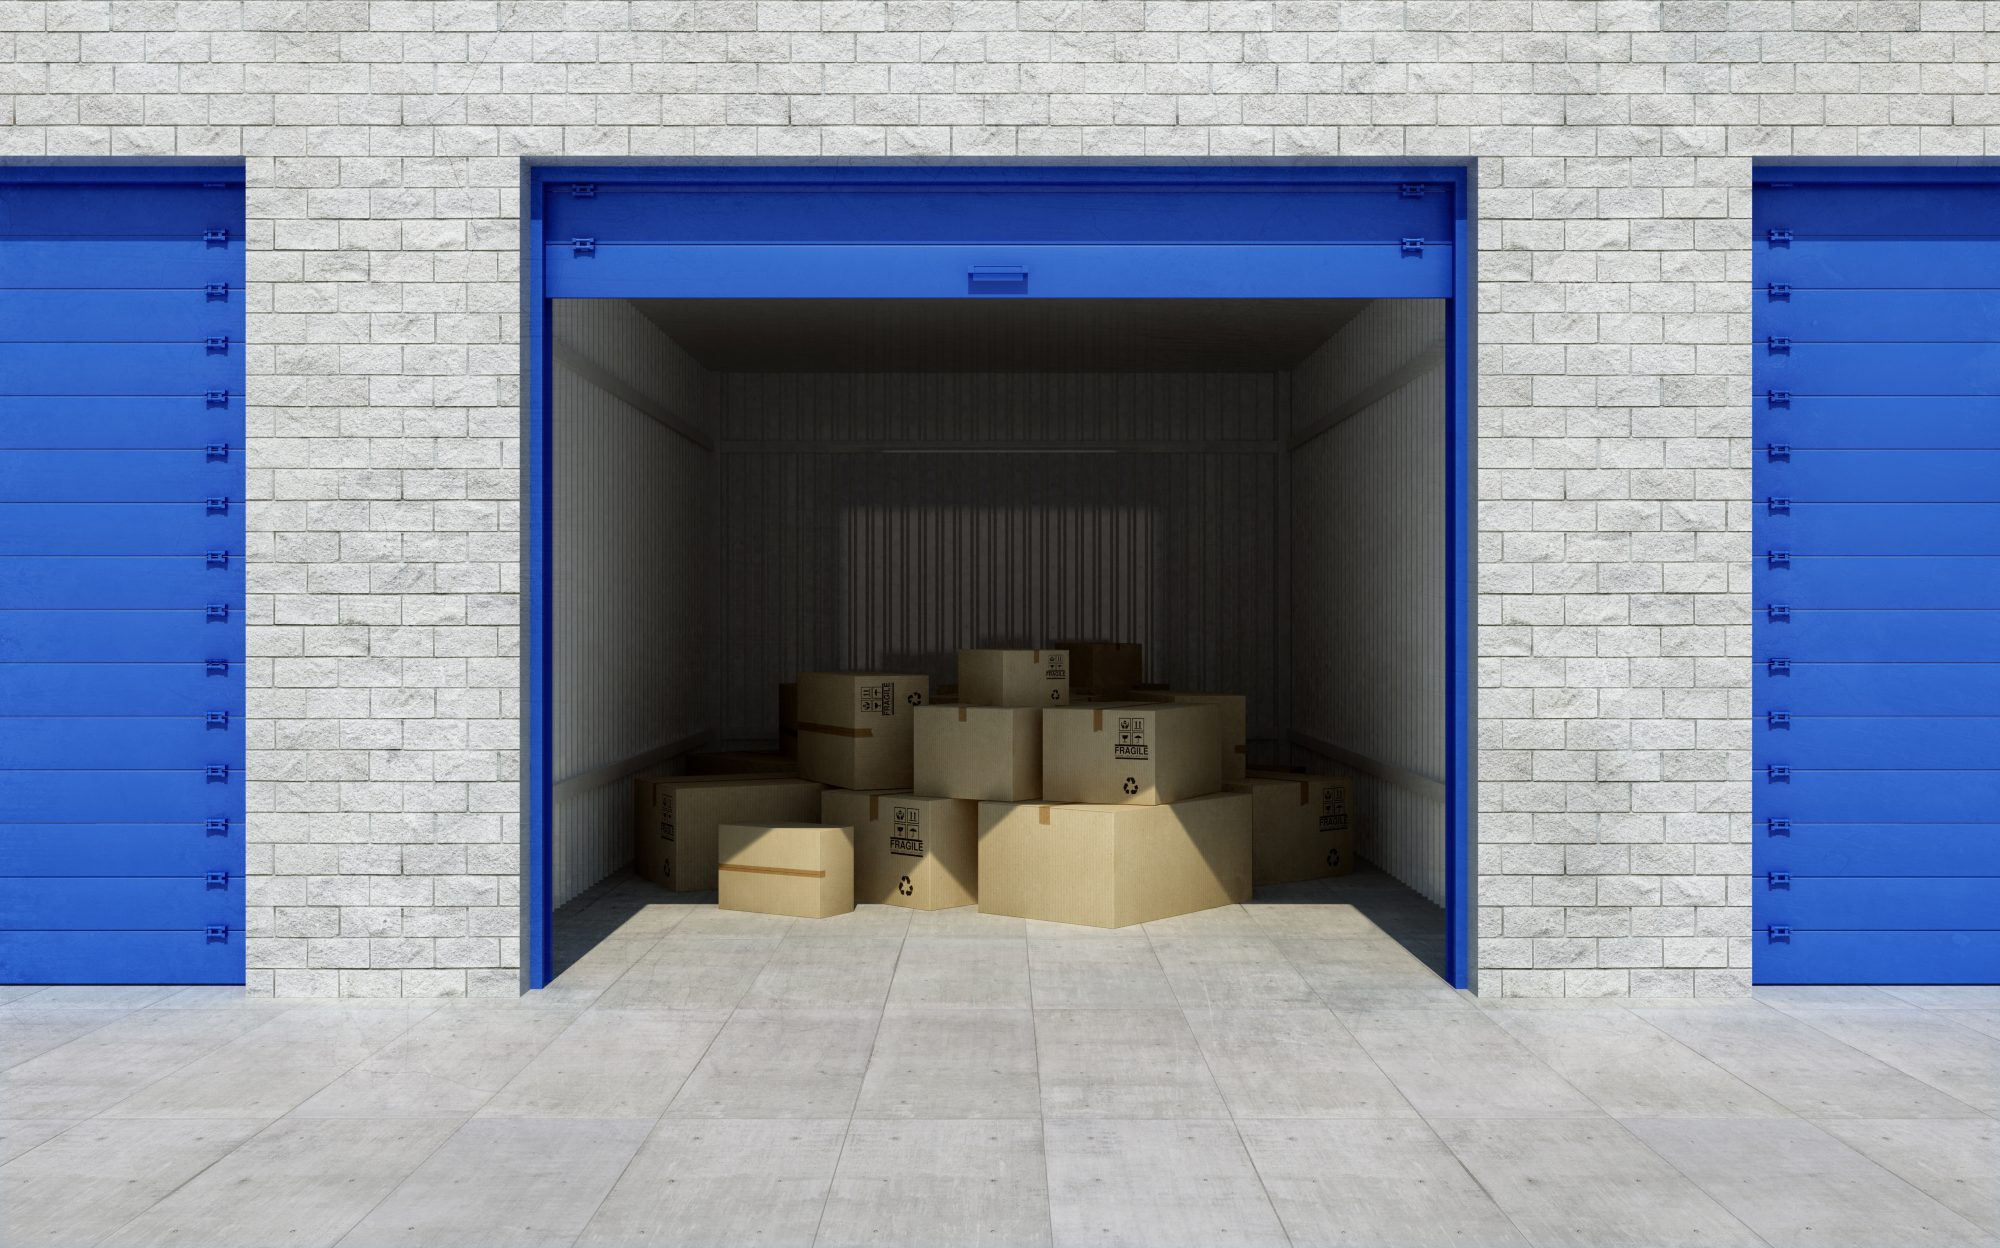 Storage unit with boxes inside of it